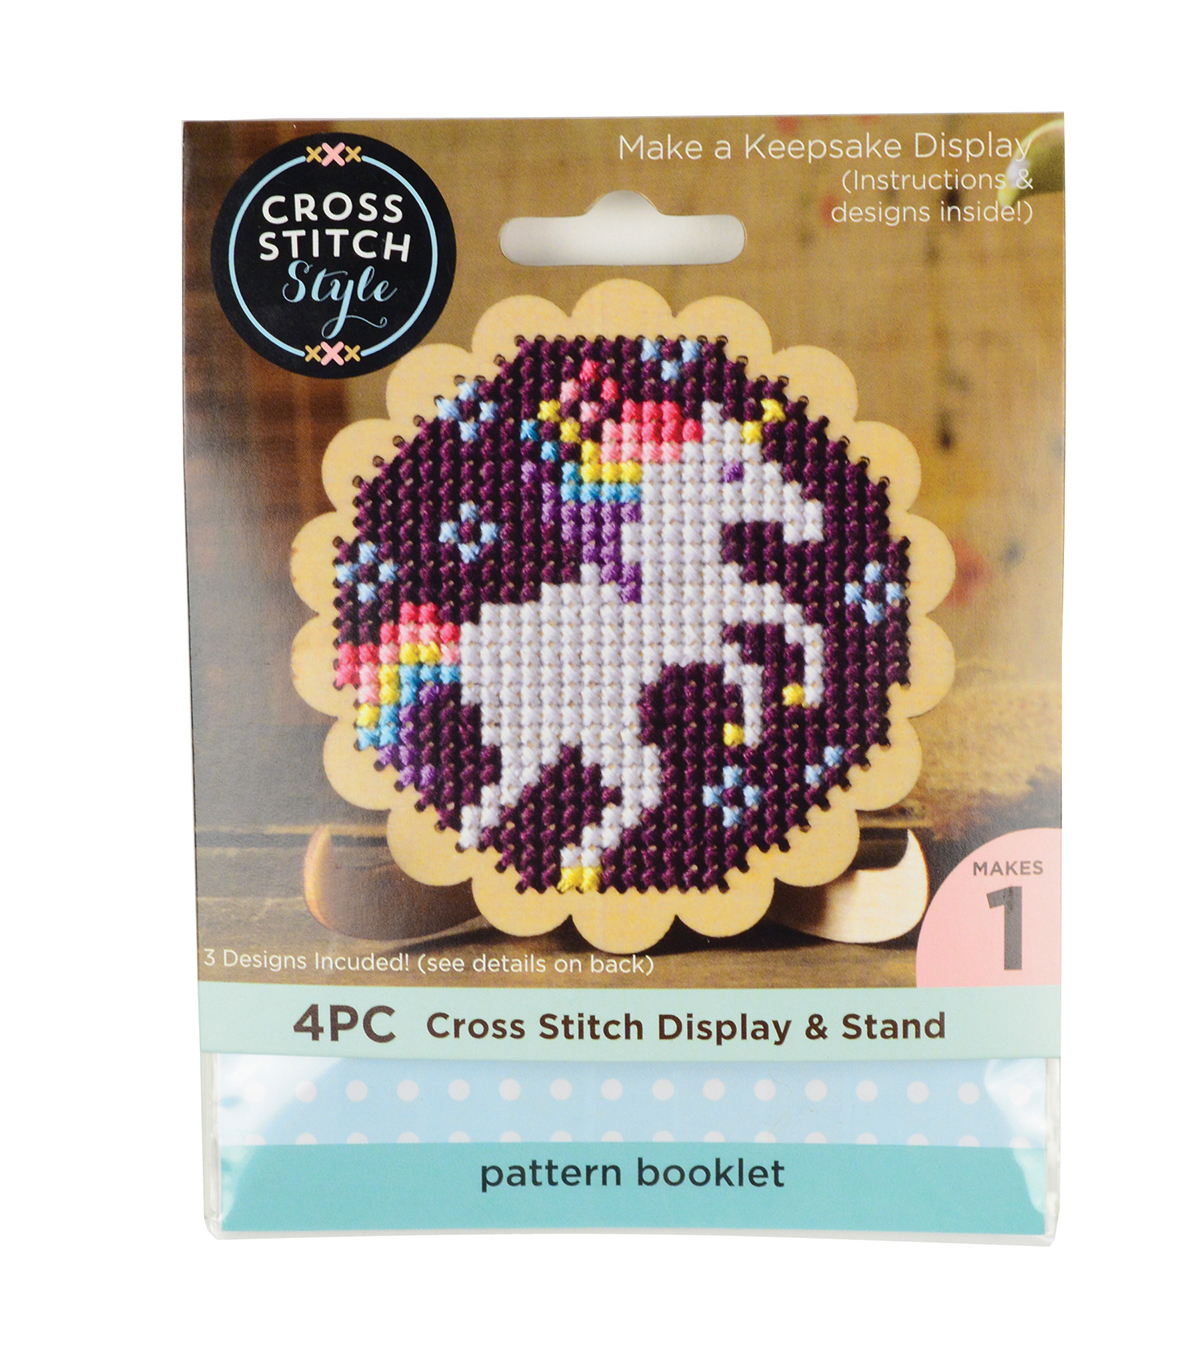 Cross Stitch Style Wood Scalloped Circle Cross Stitch Display & Stand